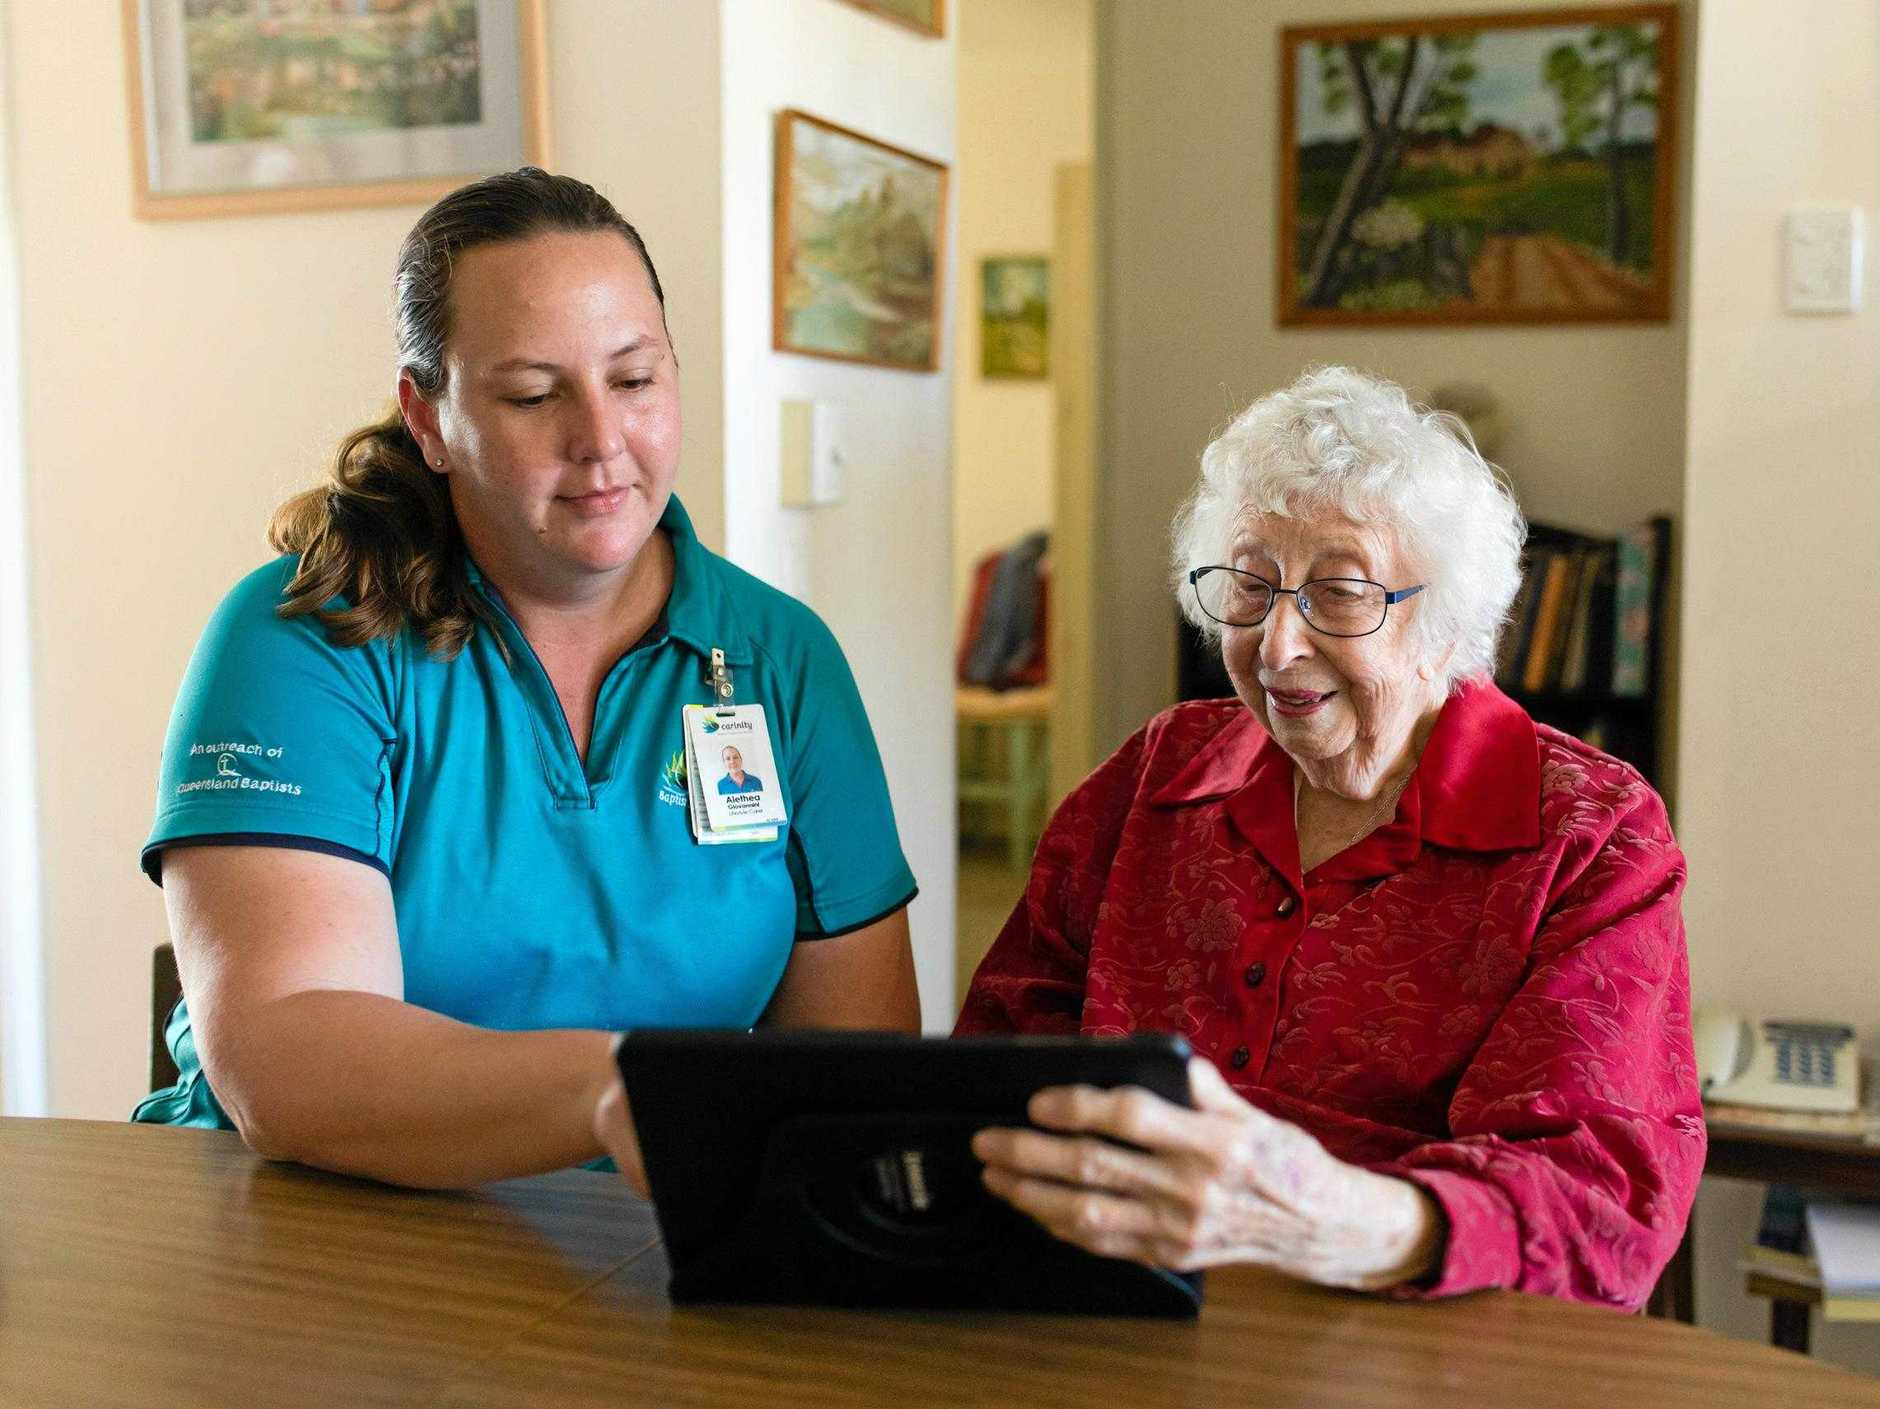 TECHNOLOGY: Carinity Home Care Rockhampton Lifestyle Carer Alethea Giovannini assists Beverley Young with her Mobi tablet.